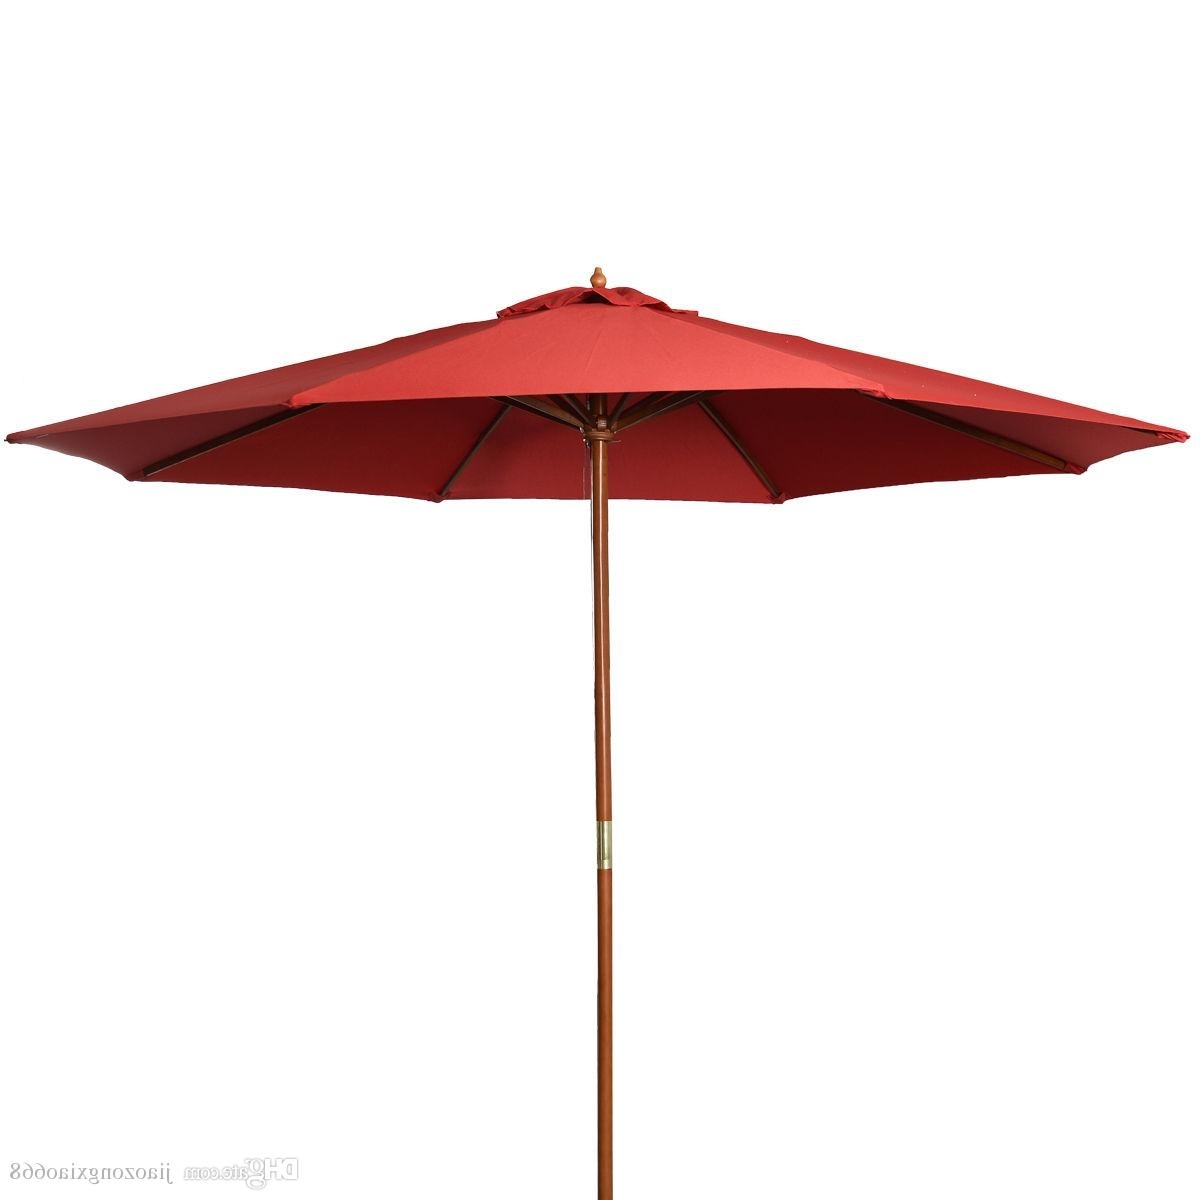 2018 9Ft Wooden Patio Umbrella Sun Shade Wood Pole Outdoor Beach In Current Red Patio Umbrellas (View 1 of 20)